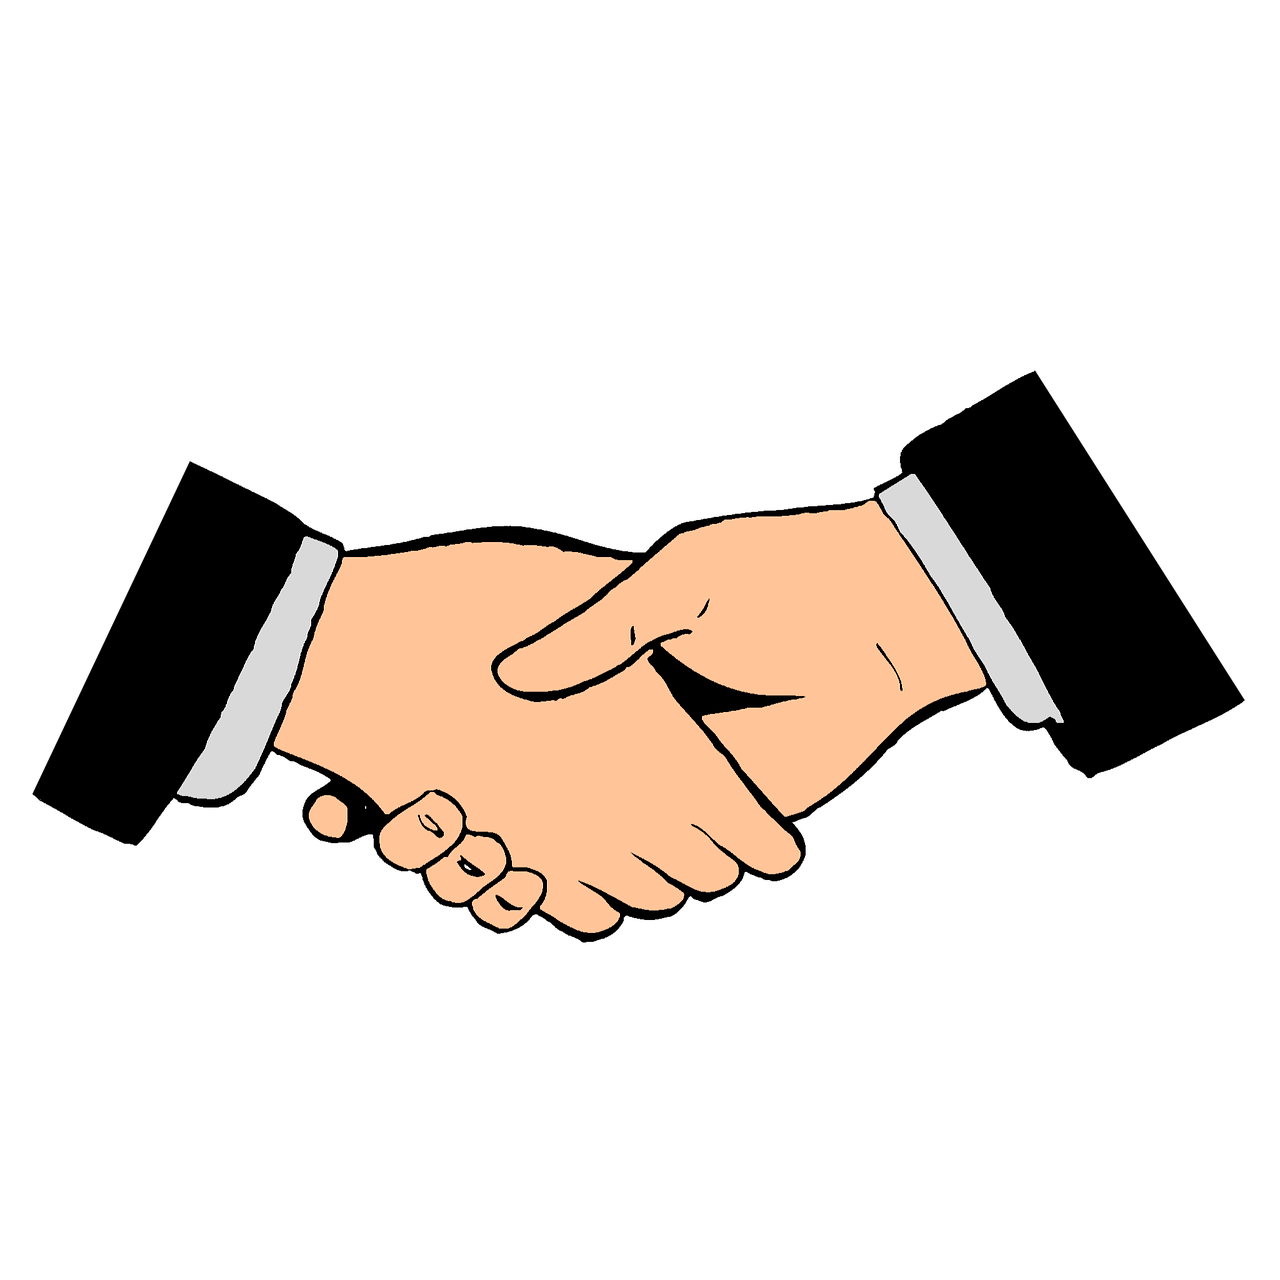 Download Free Photo Of Introduction Welcome Hand Design Clipart From Needpix Com All welcome clip art are png format and transparent background. download free photo of introduction